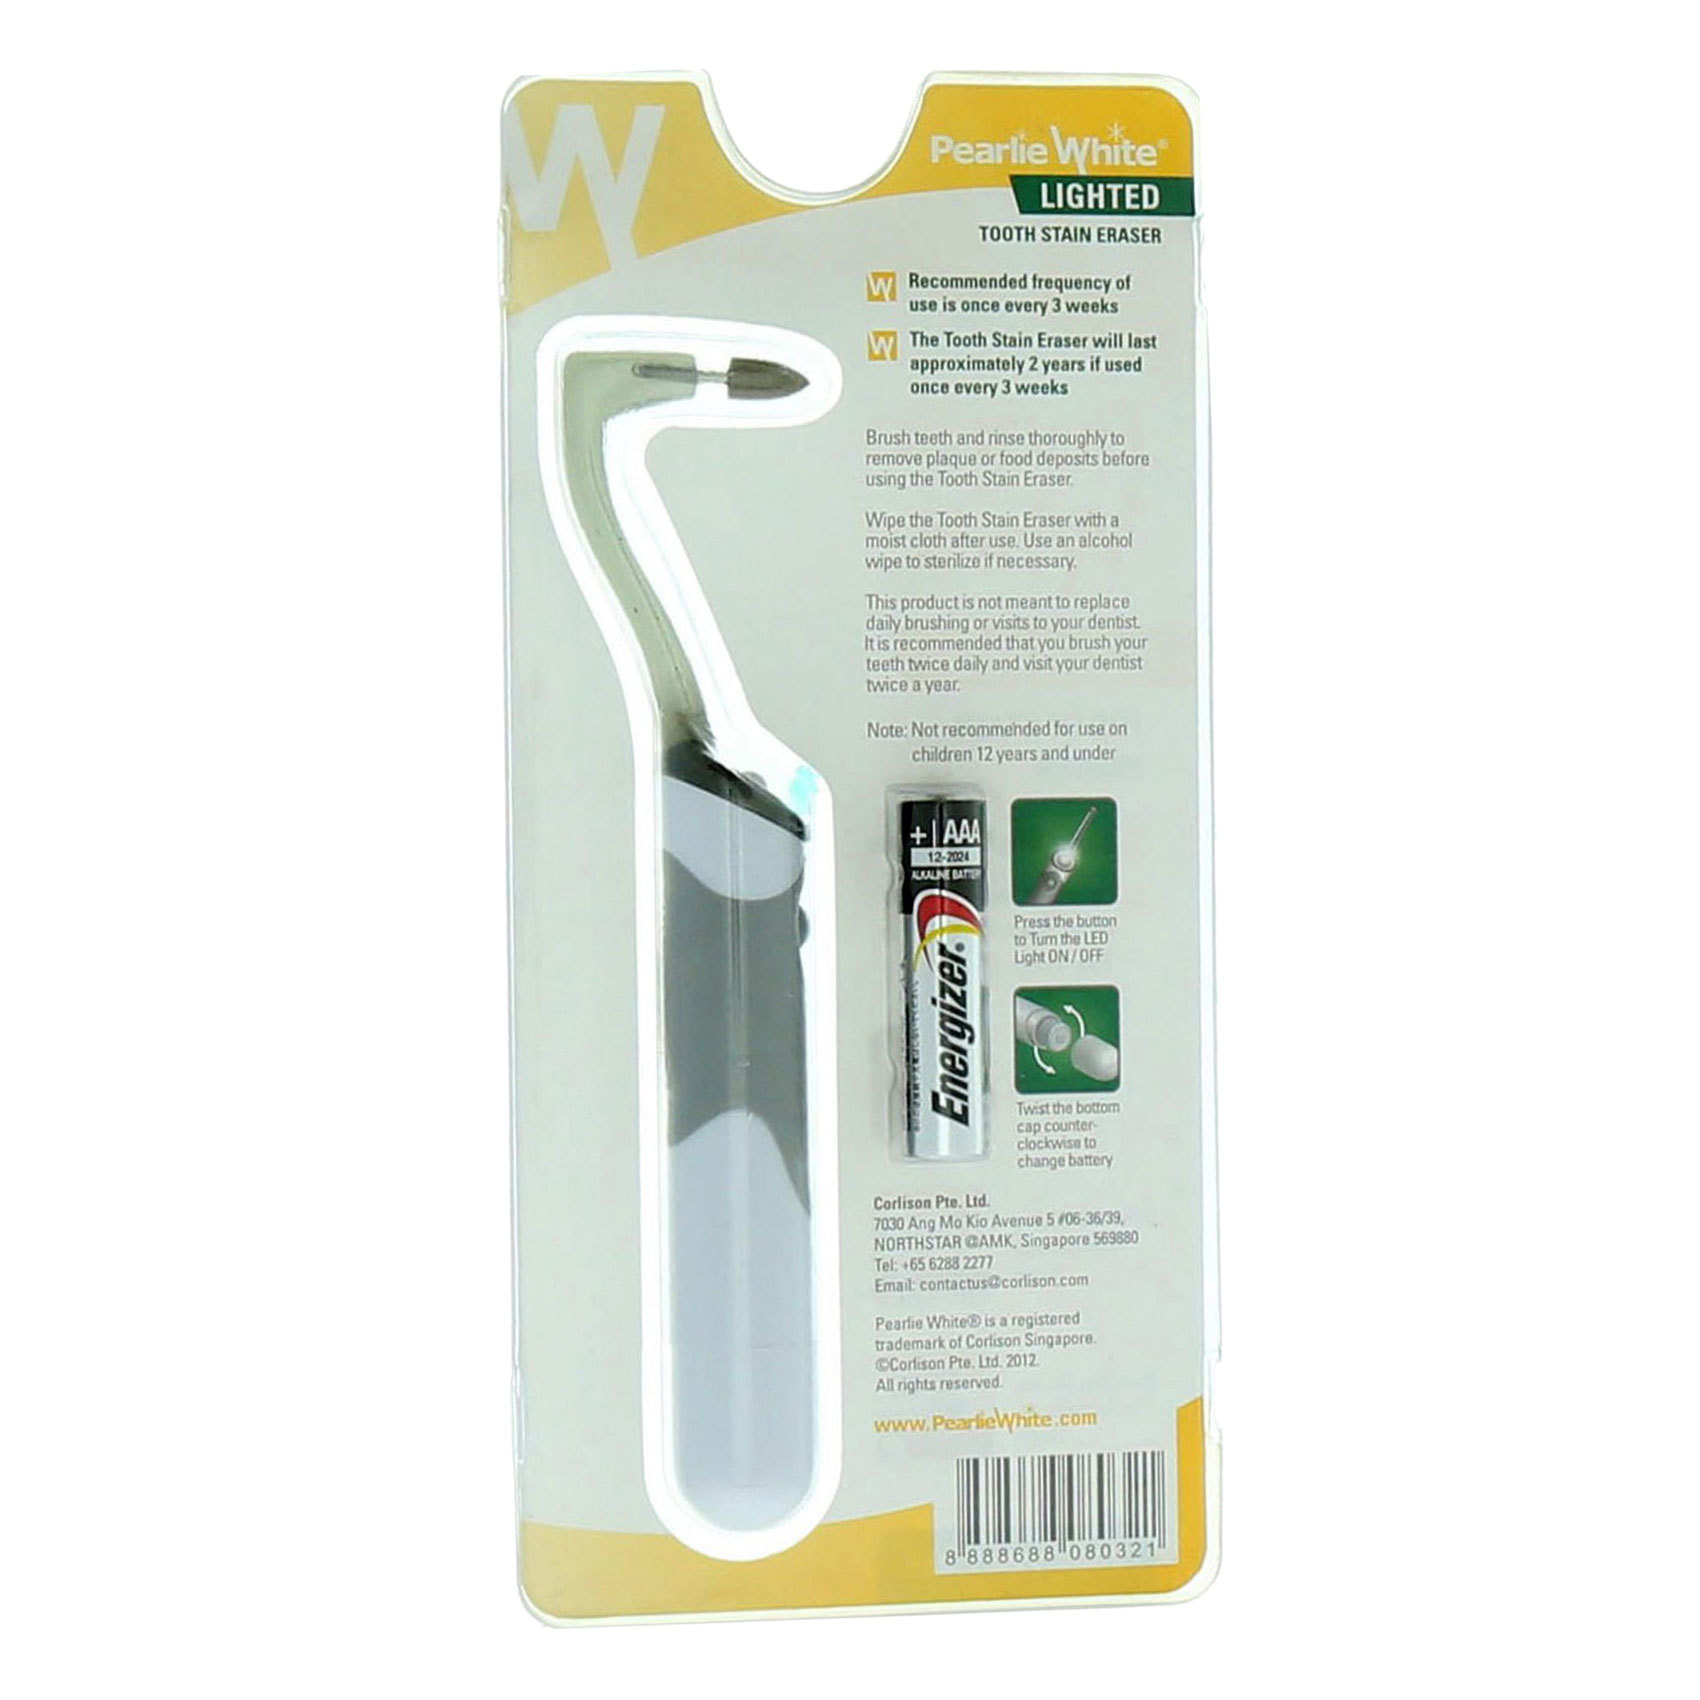 PEARLIE WHITE TOOTH STAIN ERASER